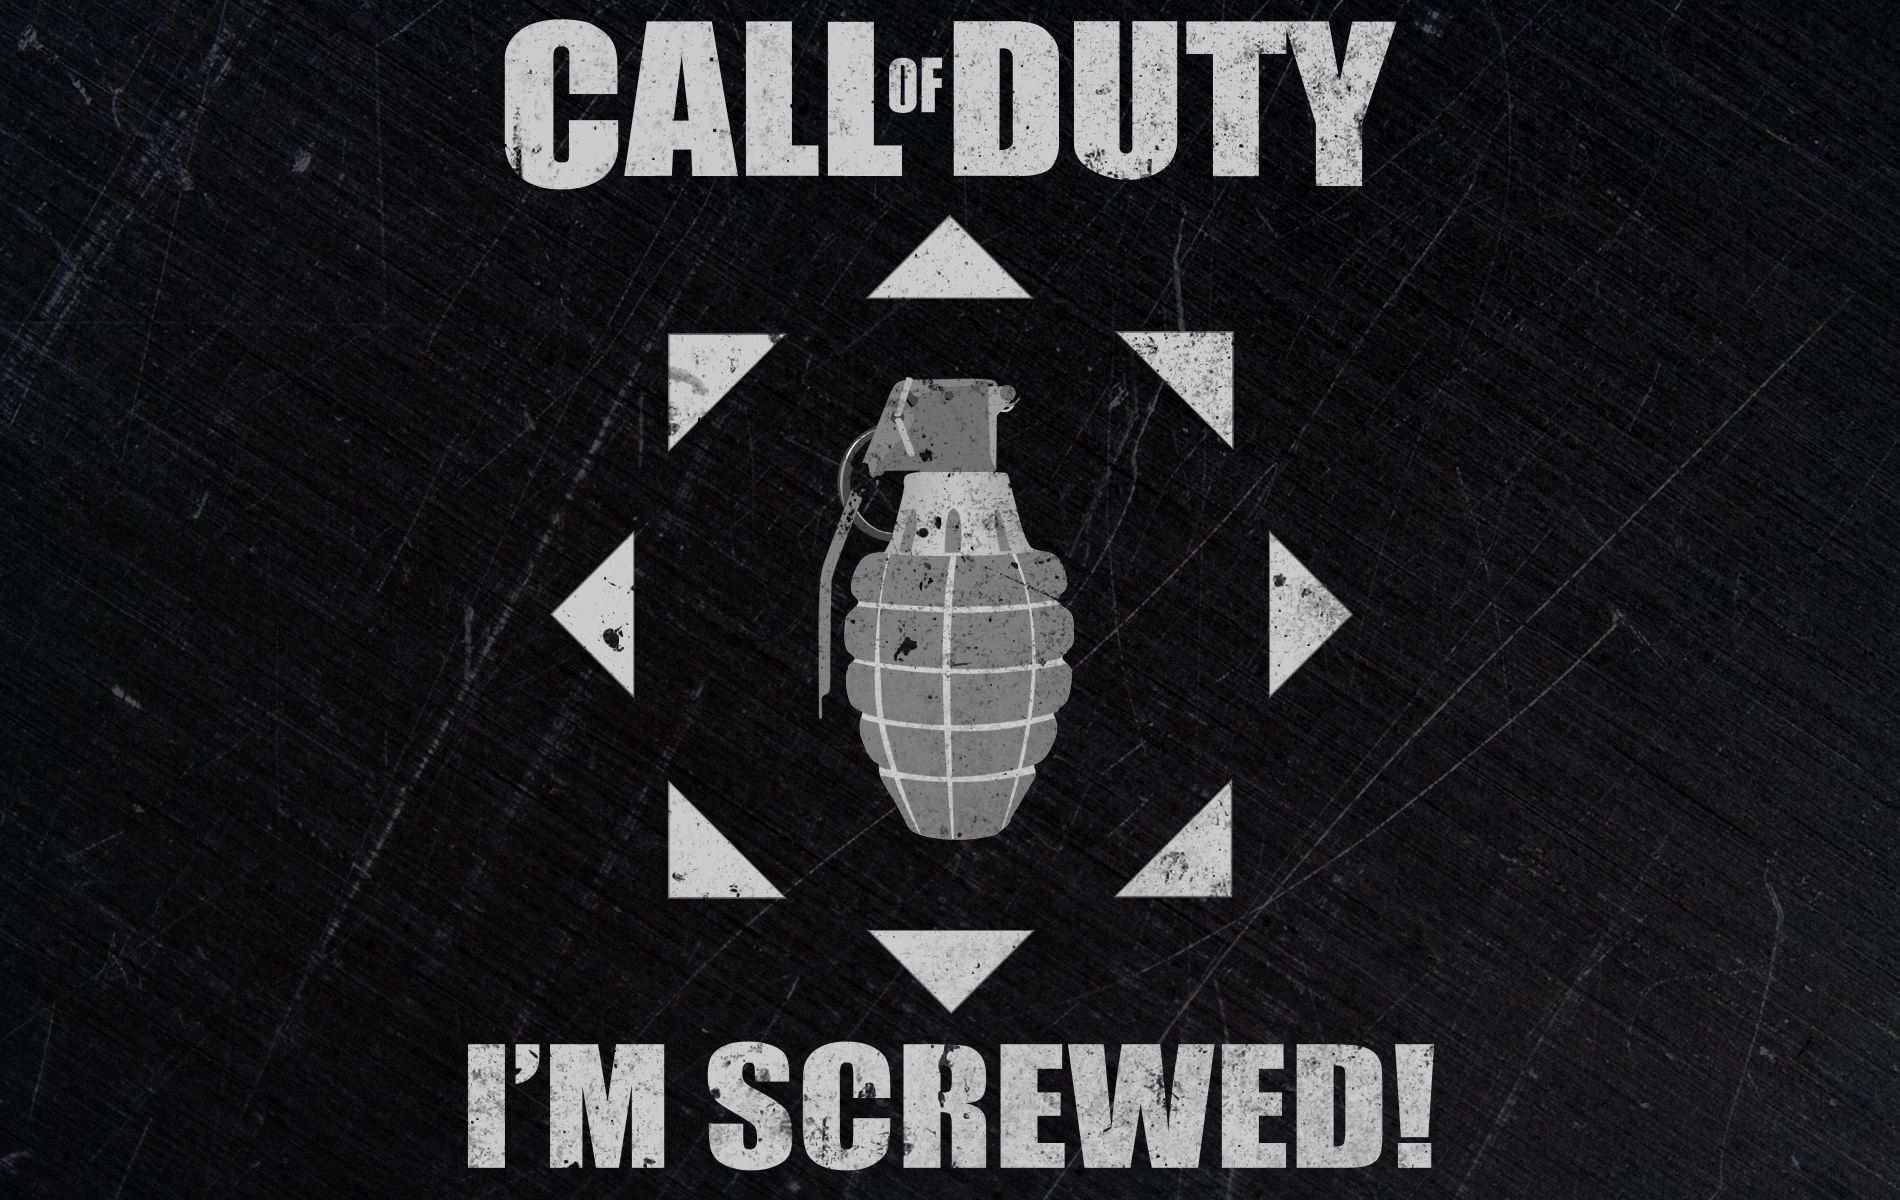 Funny call of duty 2 pictures download funny call of duty quotes - Call_of_duty_grenade_wallpaper_by_retoucher07030 Jpg Call_of_duty_grenade_wallpaper_by_retoucher07030 Jpg 0 Html Code Related Pictures No Call Of Duty